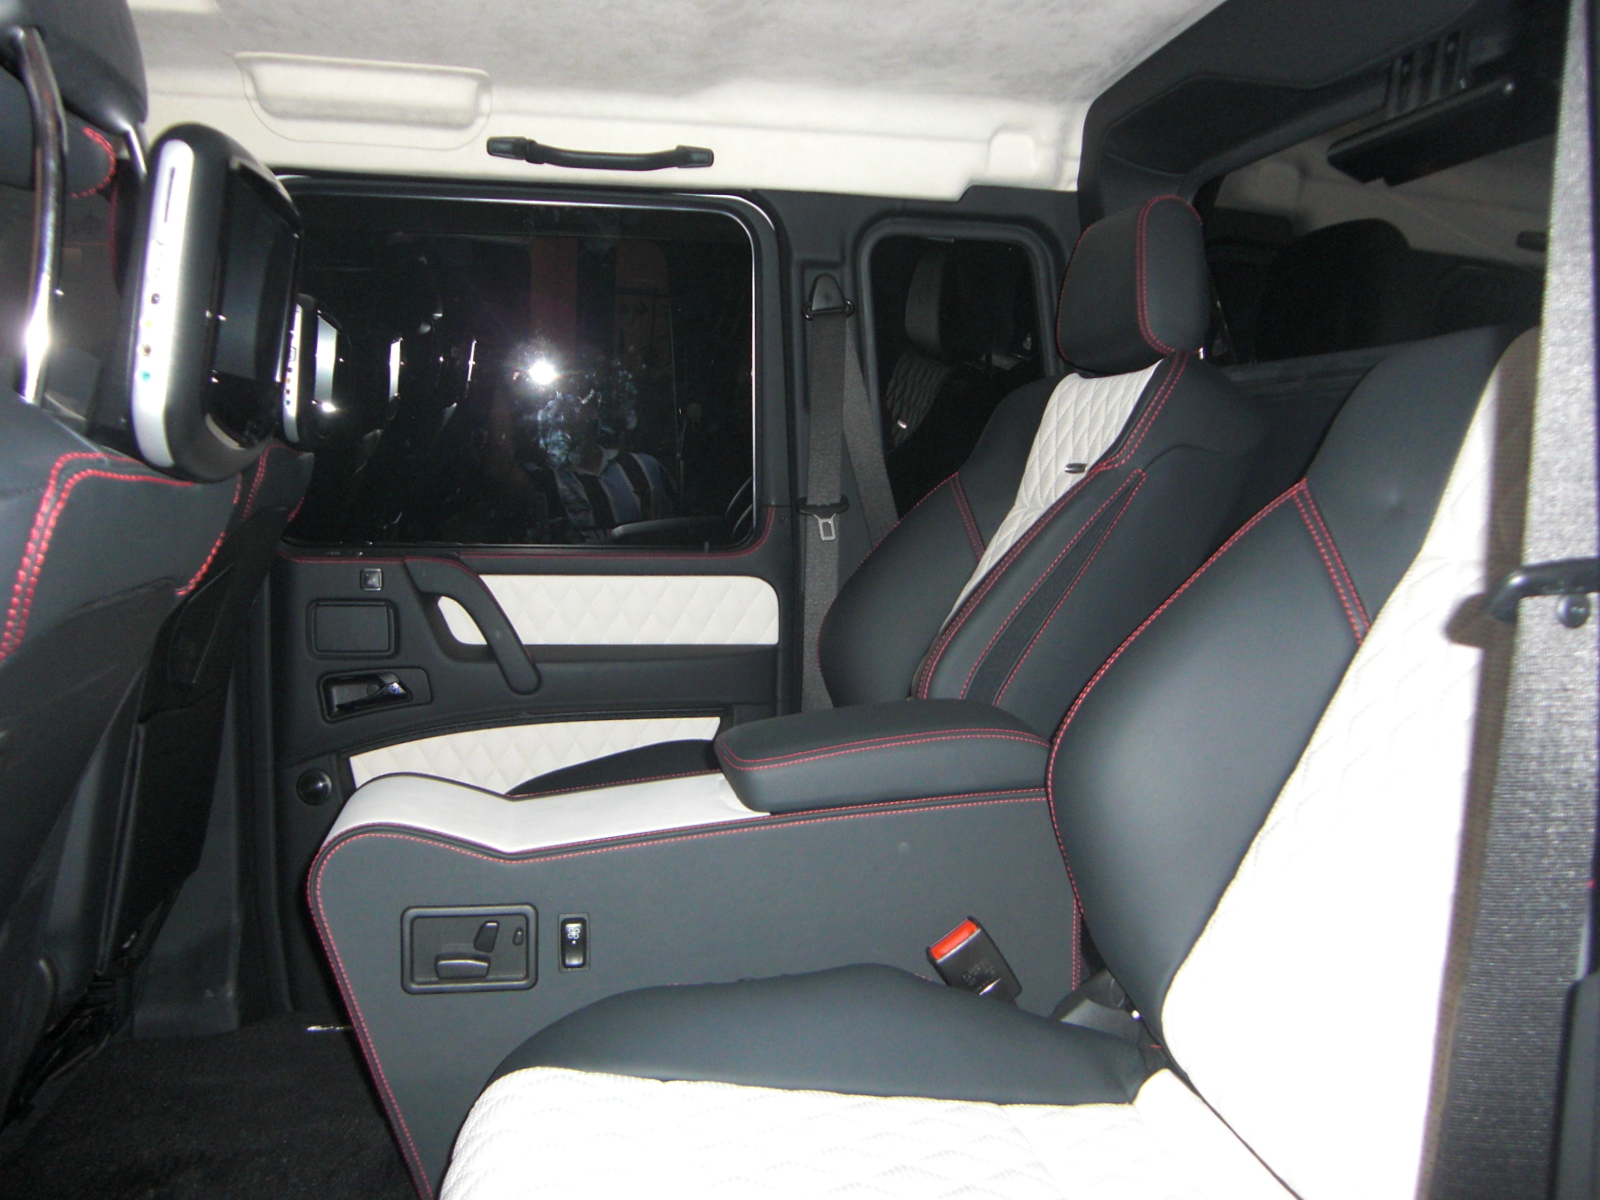 Mercedes g wagon 6x6 interior images galleries with a bite - Classe g 6x6 ...